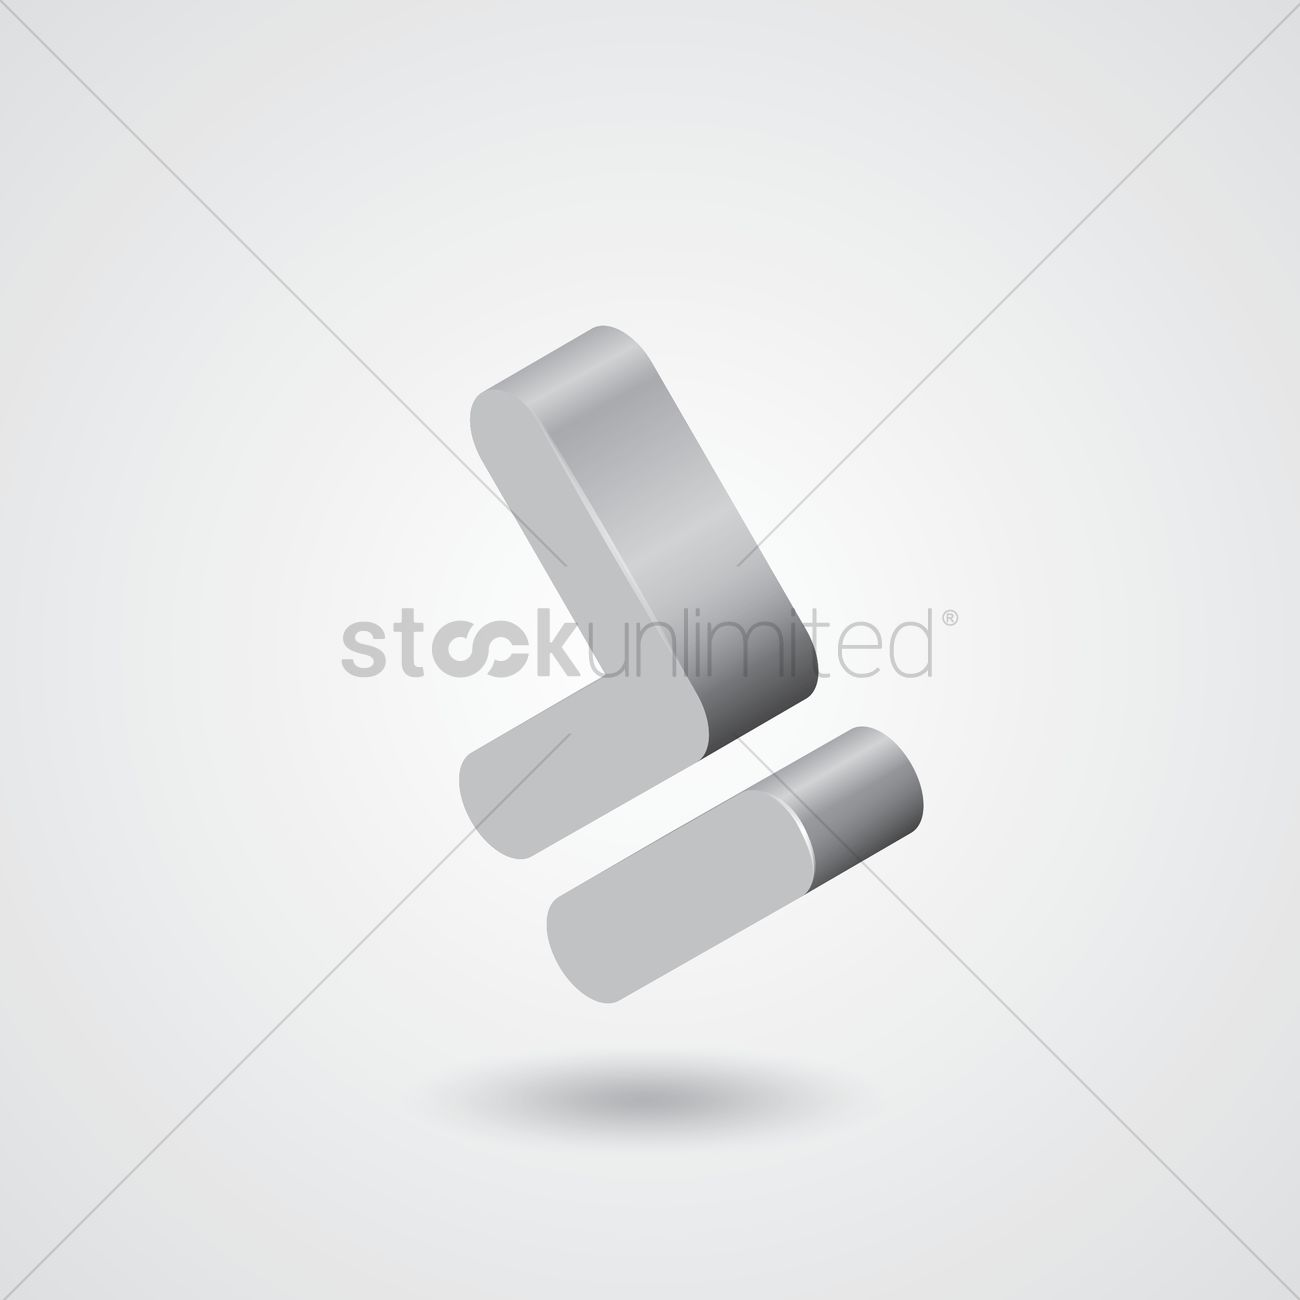 Greater Than Or Equal To Sign Vector Image 1630122 Stockunlimited